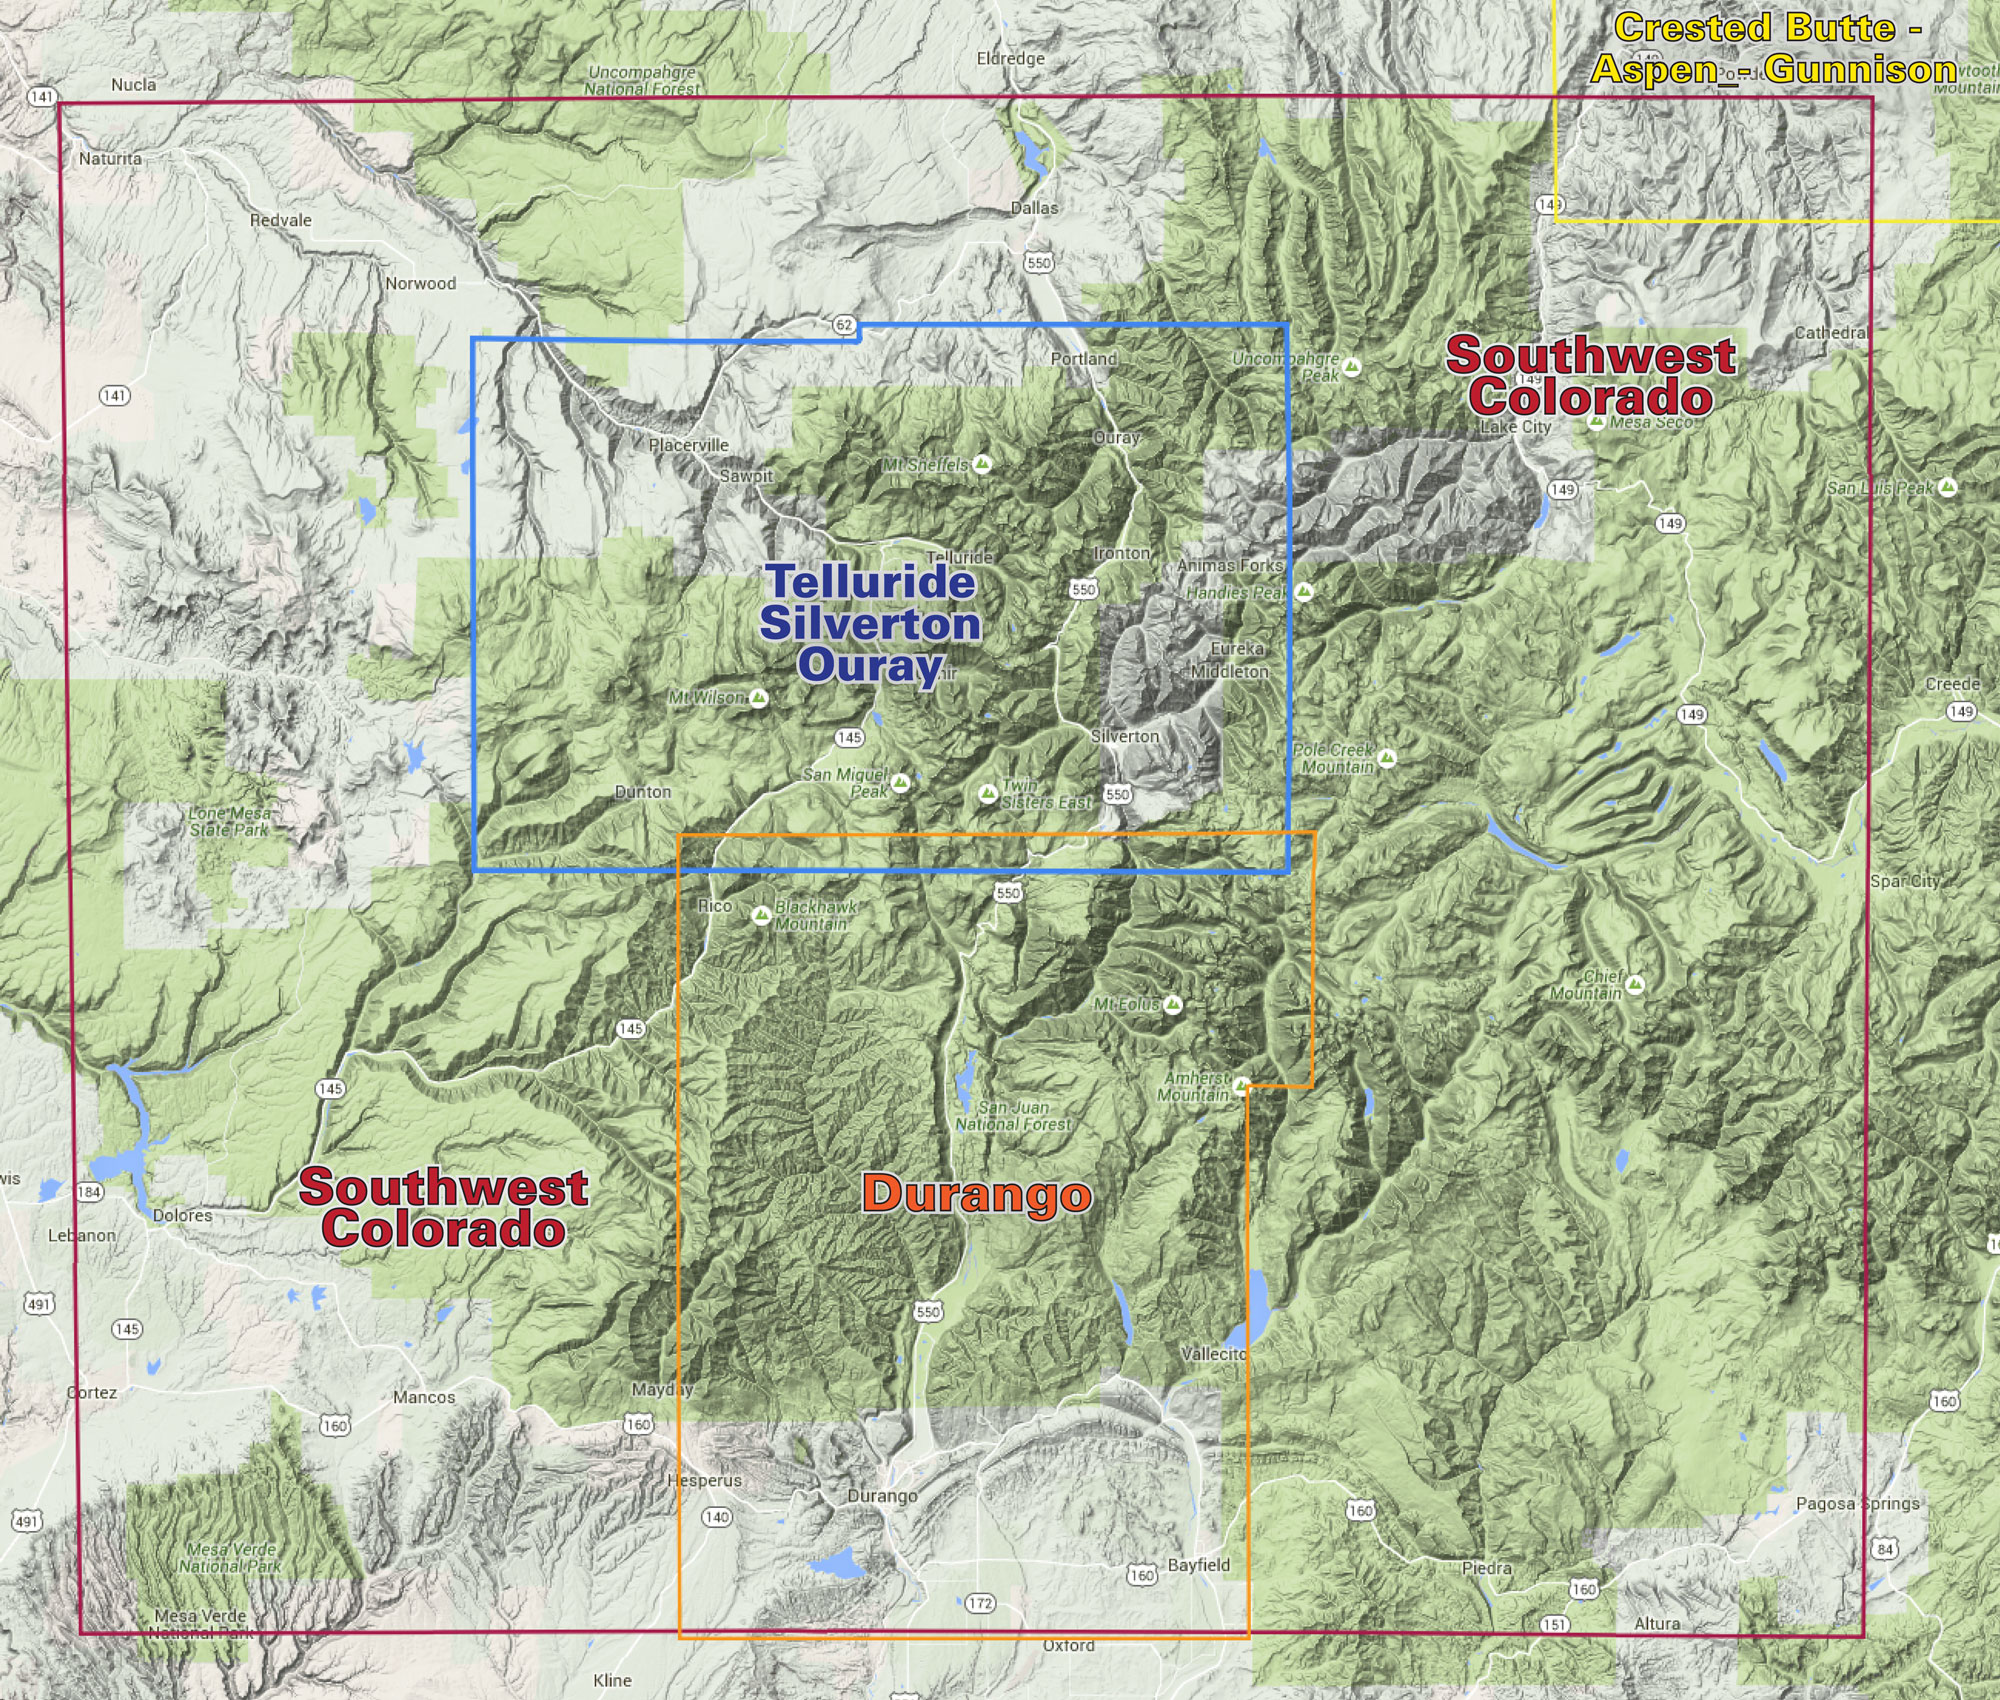 Southwest Colorado Trails | Recreation Topo Map | Laude 40° maps on